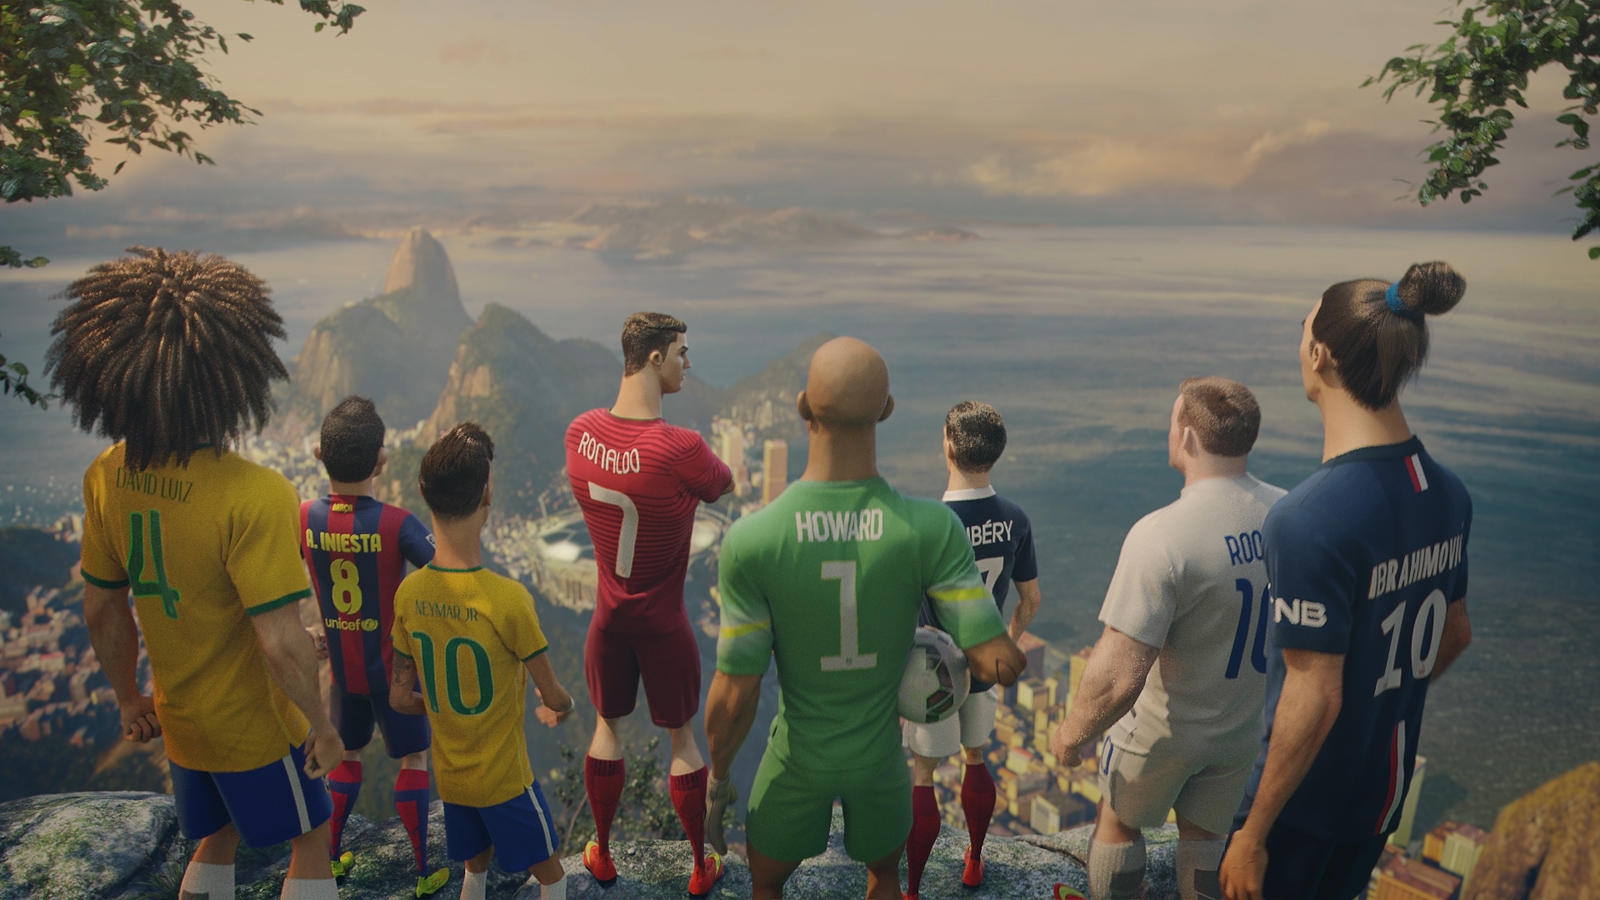 The Players from The Last Game by Nike Football